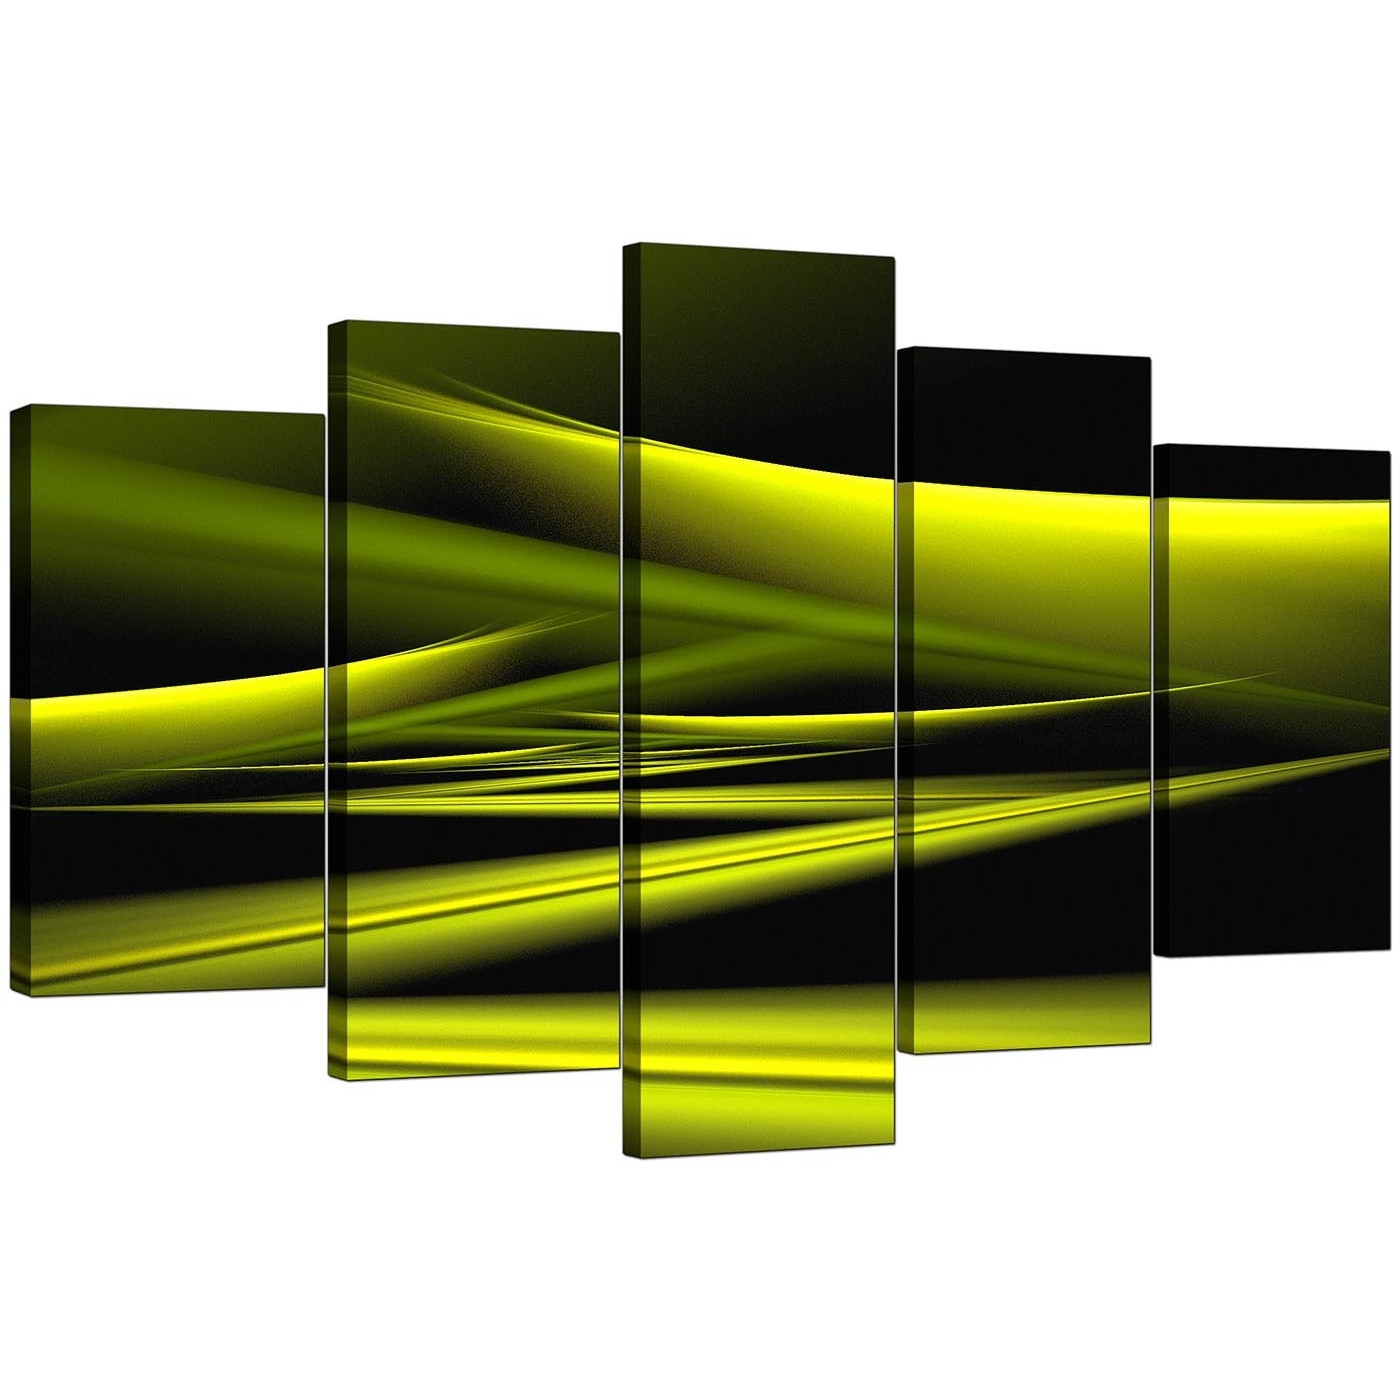 Extra Large Green Abstract Canvas Prints – 5 Piece For Best And Newest Lime Green Abstract Wall Art (View 11 of 20)